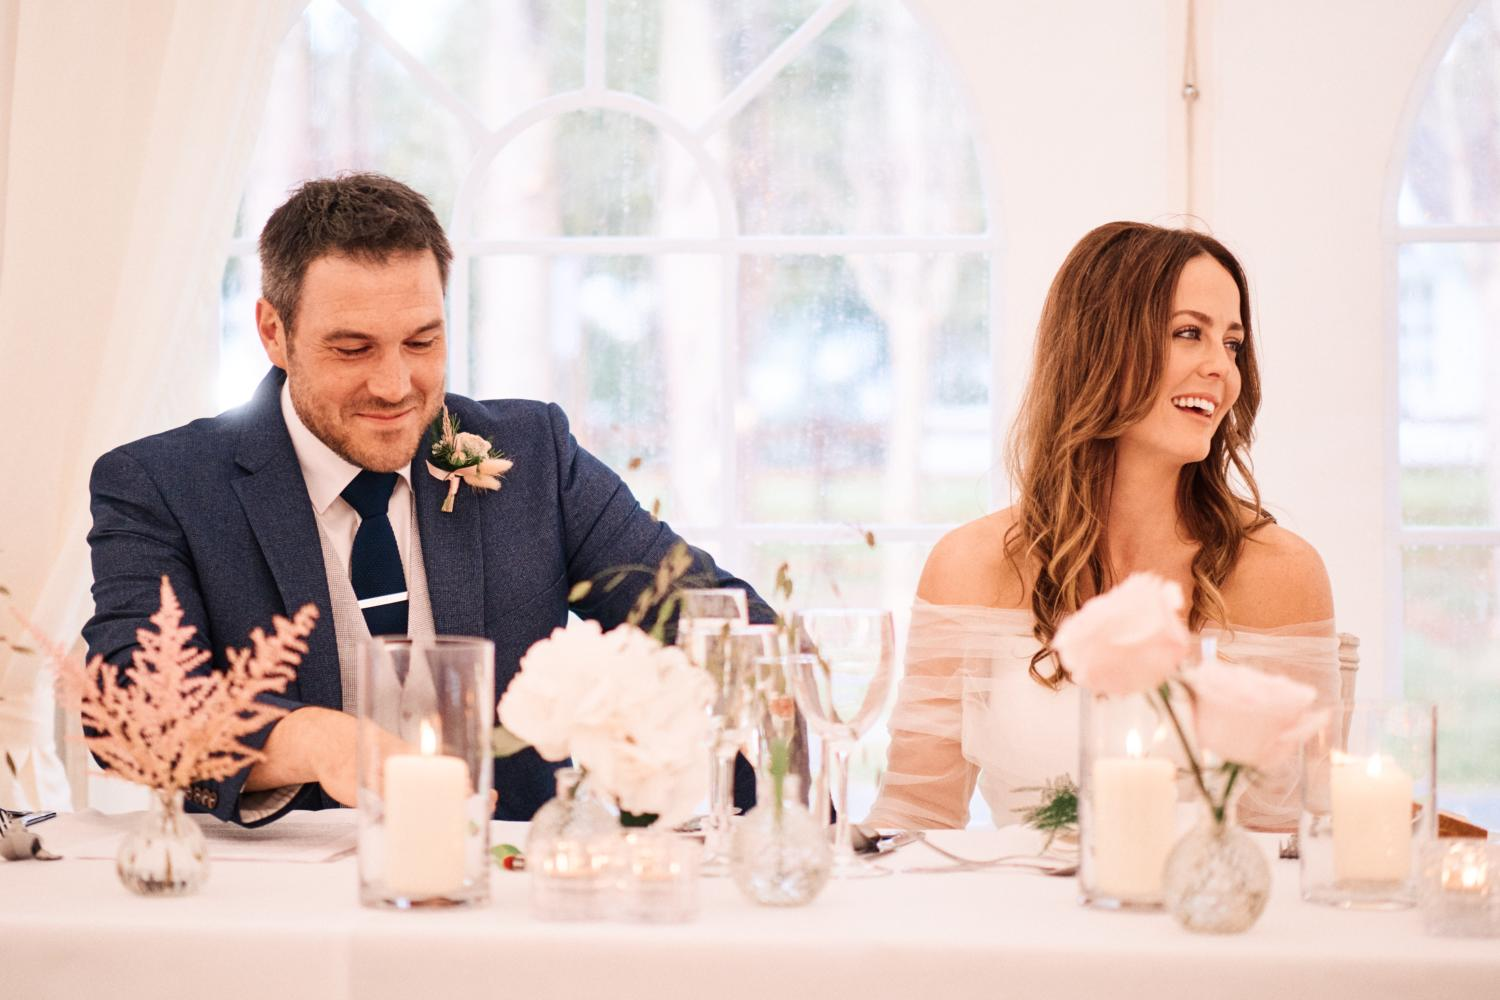 A married couple smile as they listen to the speeches